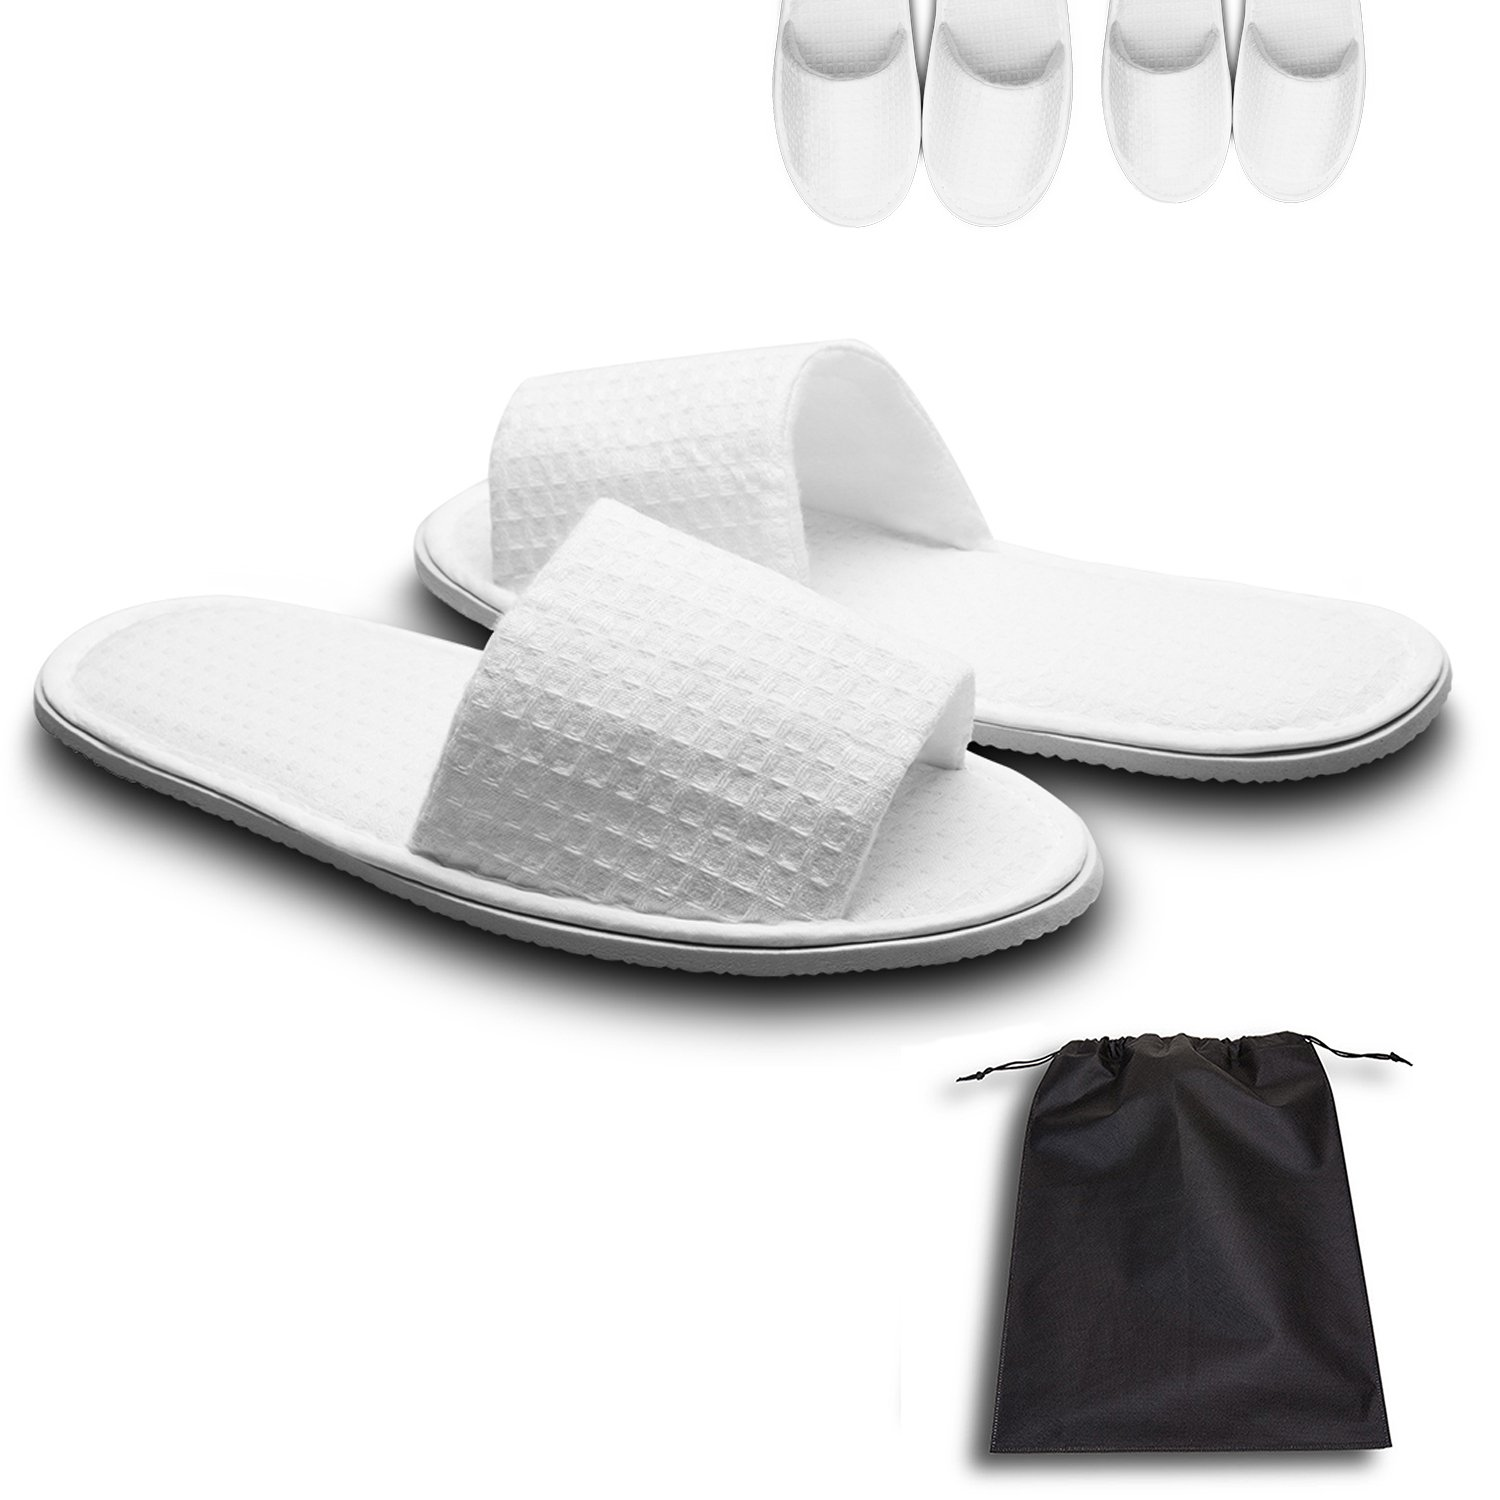 echoapple 10 Pairs of Waffle Open Toe White Slippers-One Size Fit Most Men and Women for Spa, Party Guest, Hotel and Travel, Washable and Non-Disposable (Large, White-10 Pairs) (Large, White-10 Pairs)